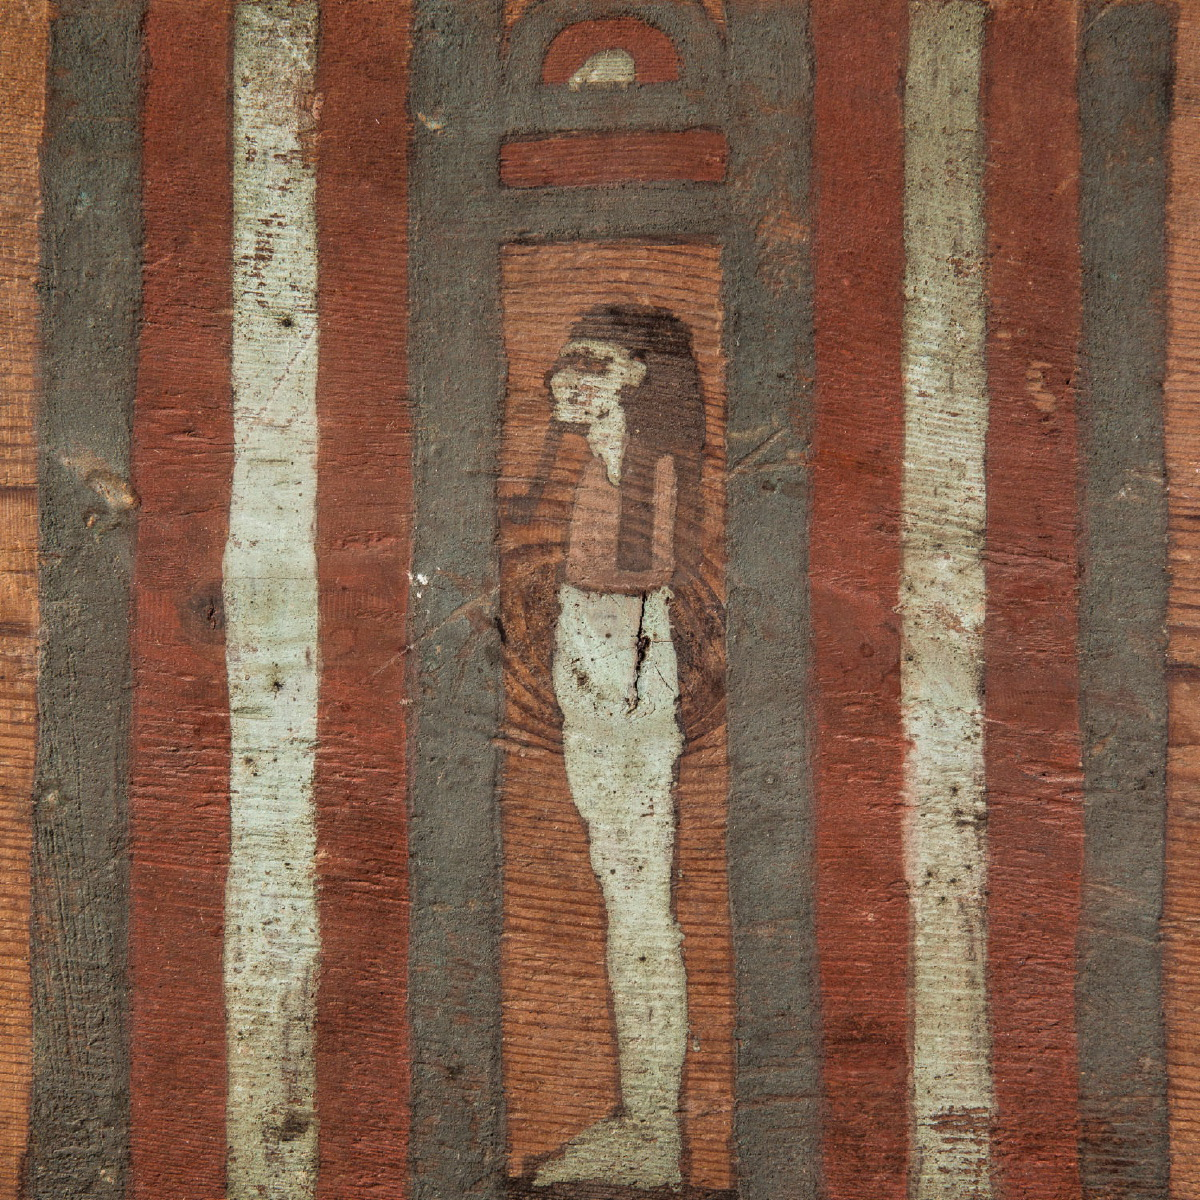 Photo of wooden-panel-of-an-inner-coffin-old-egypt